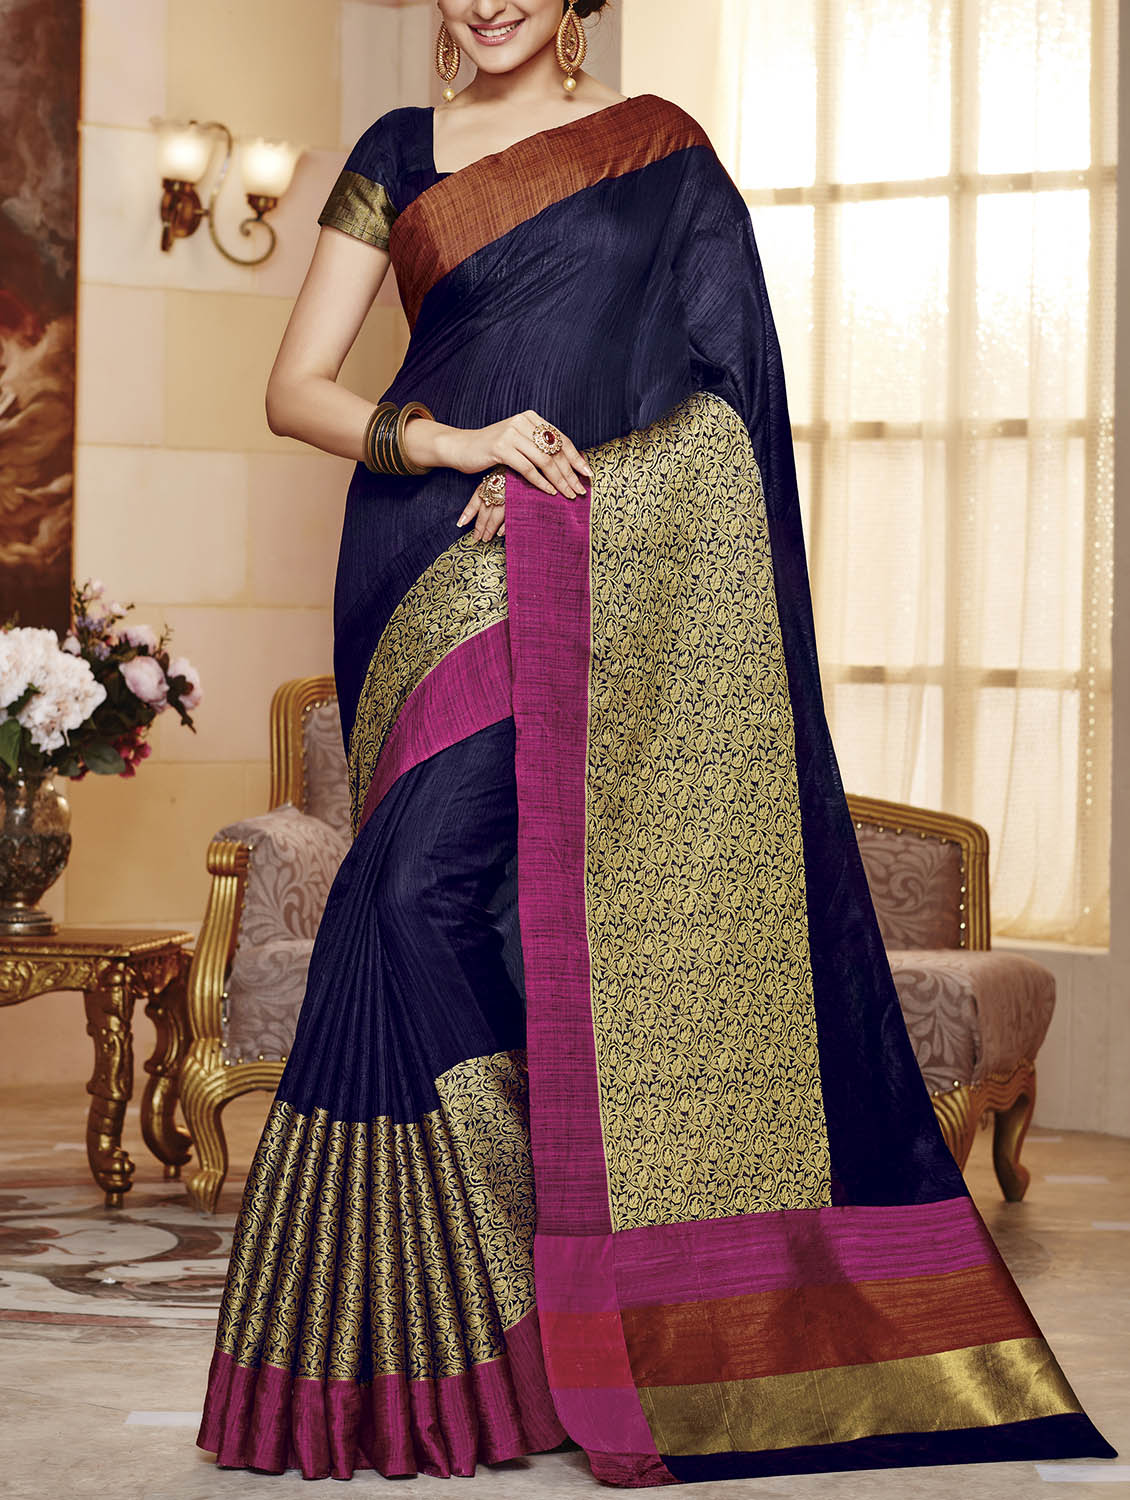 b3bea6fd2f5dcf ... blue raw silk woven saree with blouse - 13926031 - Zoom Image - 1